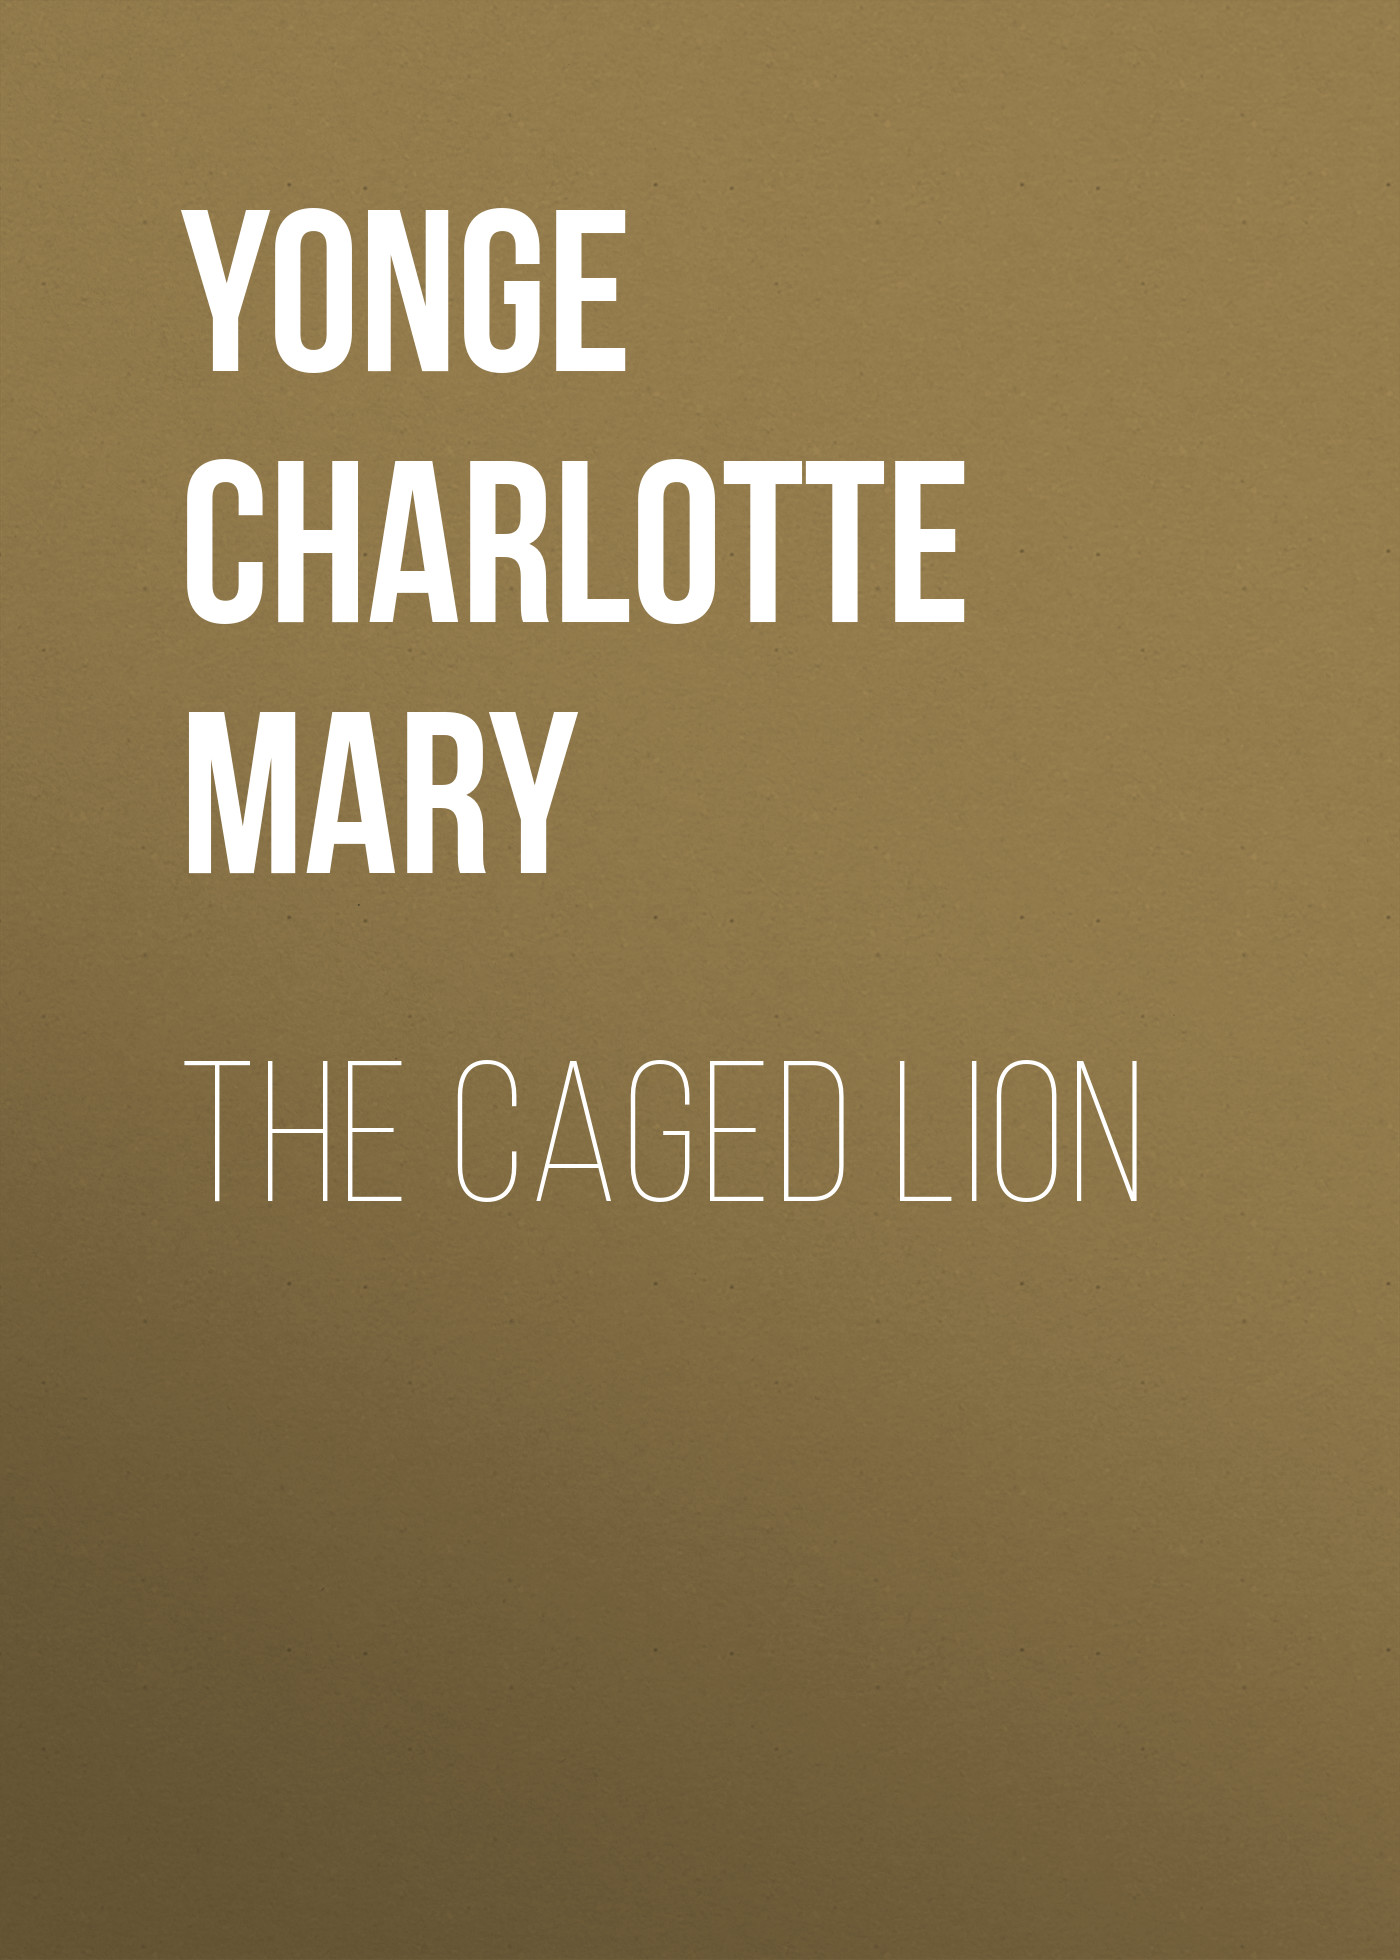 Yonge Charlotte Mary The Caged Lion yonge charlotte mary countess kate